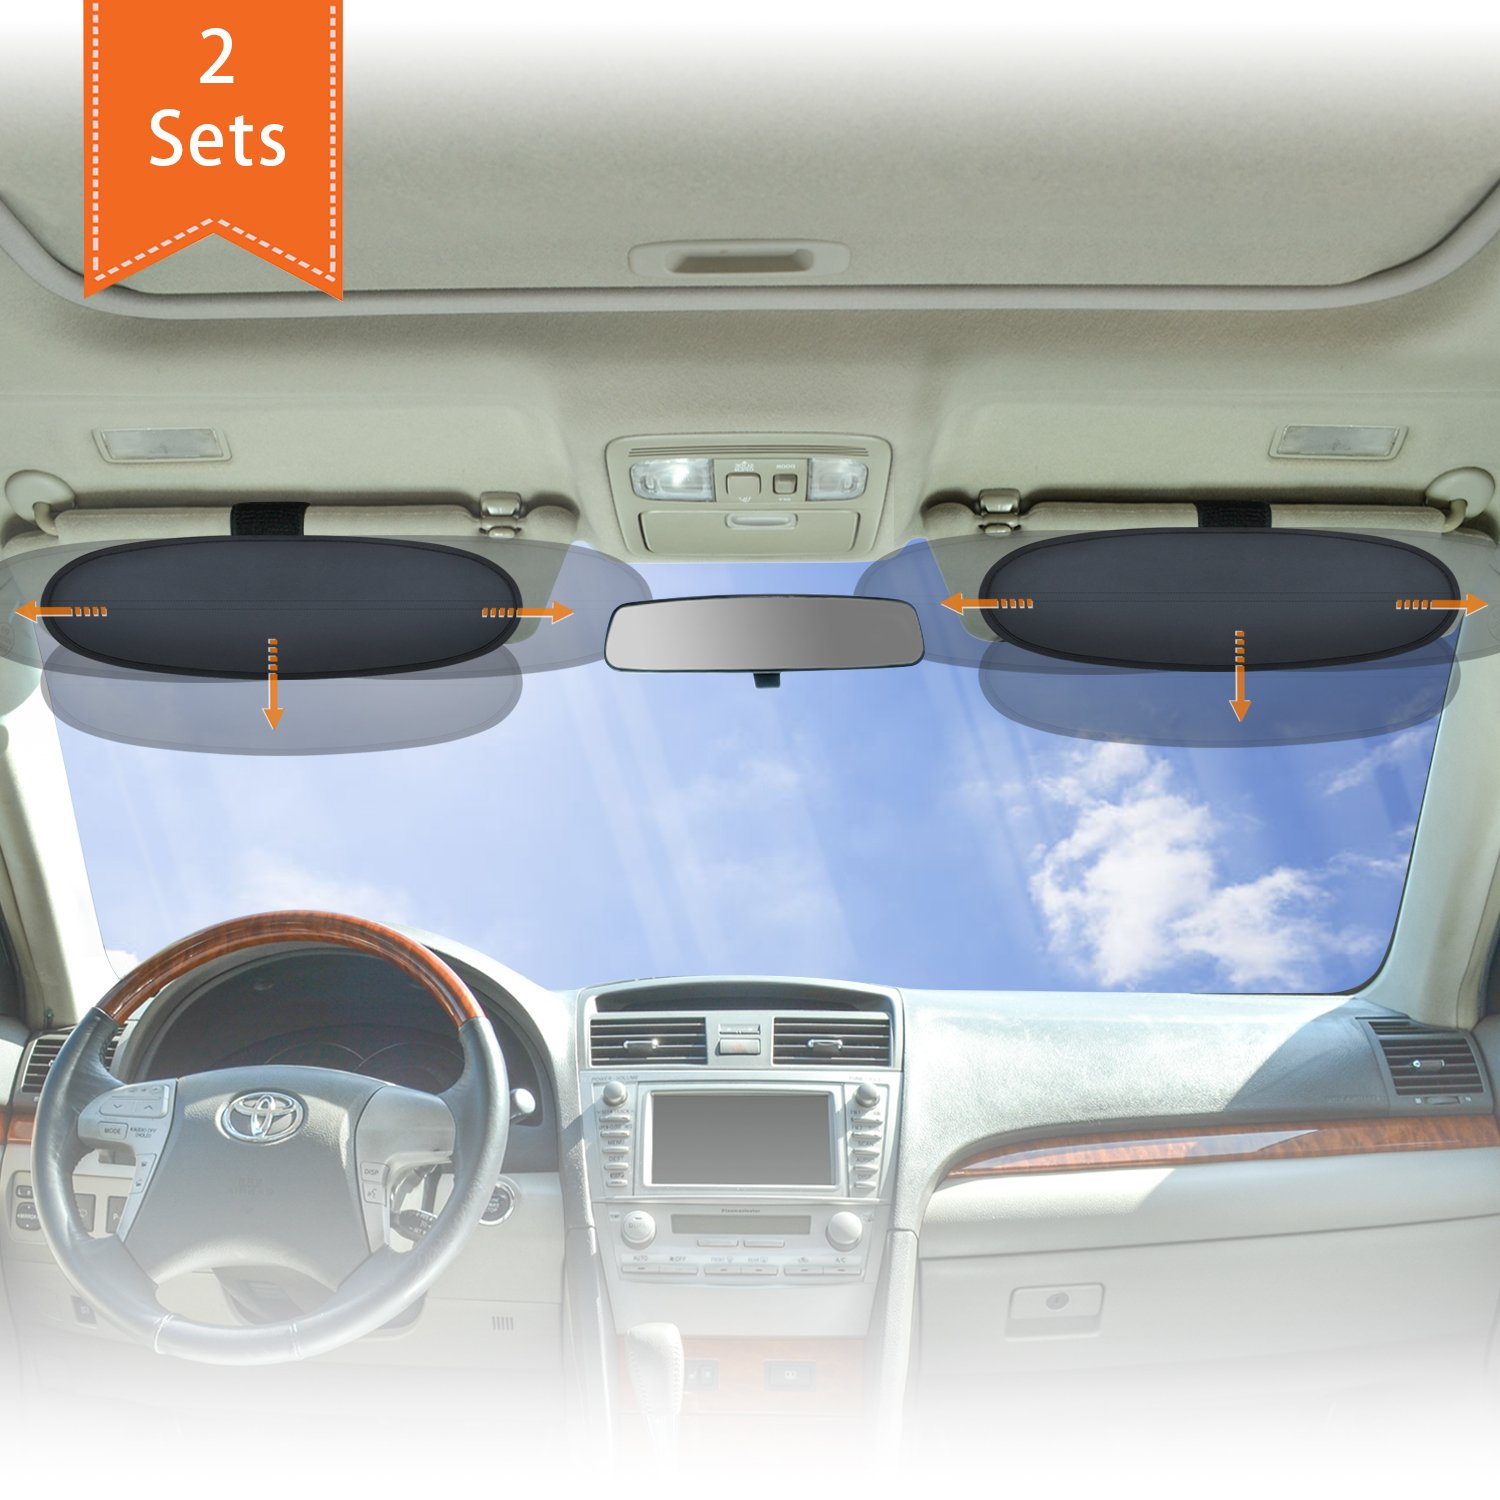 Amazon.com  WANPOOL Anti-Glare Car Visor Sunshade Extender for Drivers and  Front Seat Passengers (Silver) - 2 Pieces  Baby 7c0ad700798